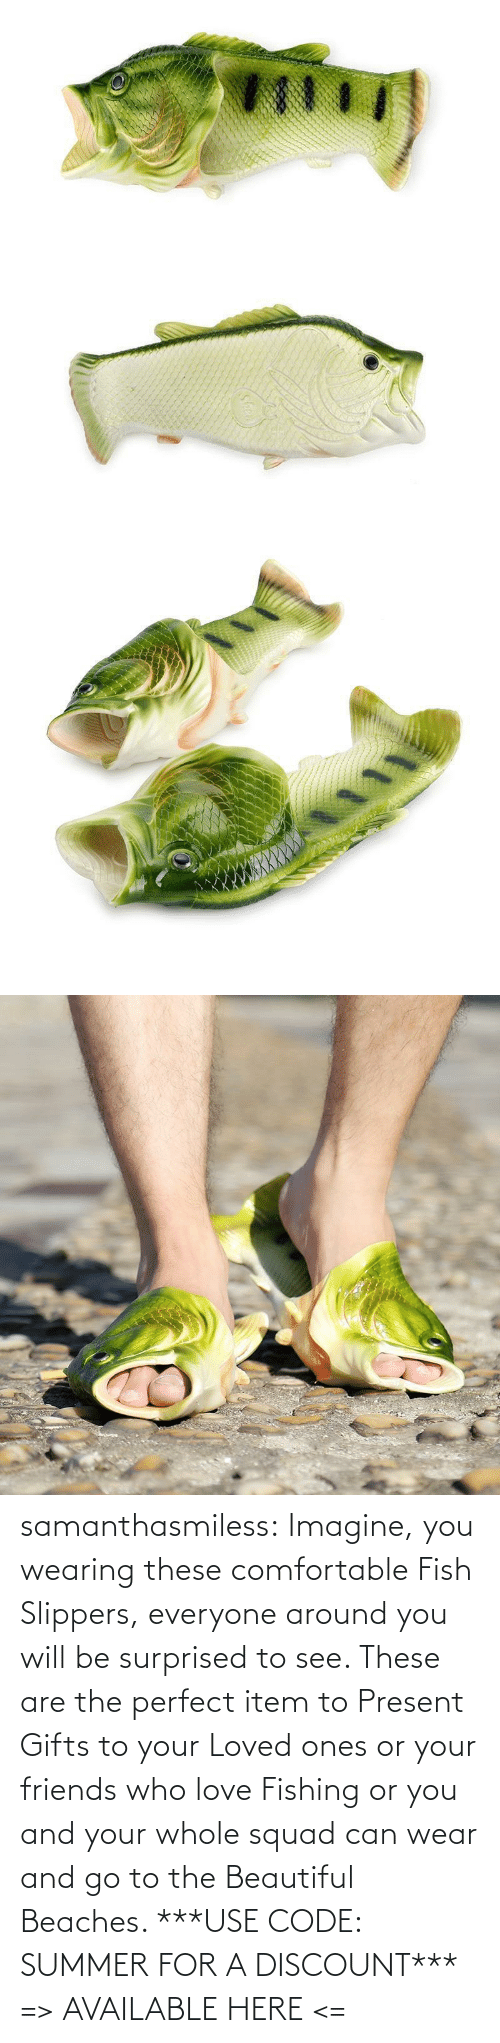 wear: samanthasmiless: Imagine, you wearing these comfortable Fish Slippers, everyone around you will be surprised to see. These are the perfect item to Present Gifts to your Loved ones or your friends who love Fishing or you and your whole squad can wear and go to the Beautiful Beaches.  ***USE CODE: SUMMER FOR A DISCOUNT*** => AVAILABLE HERE <=